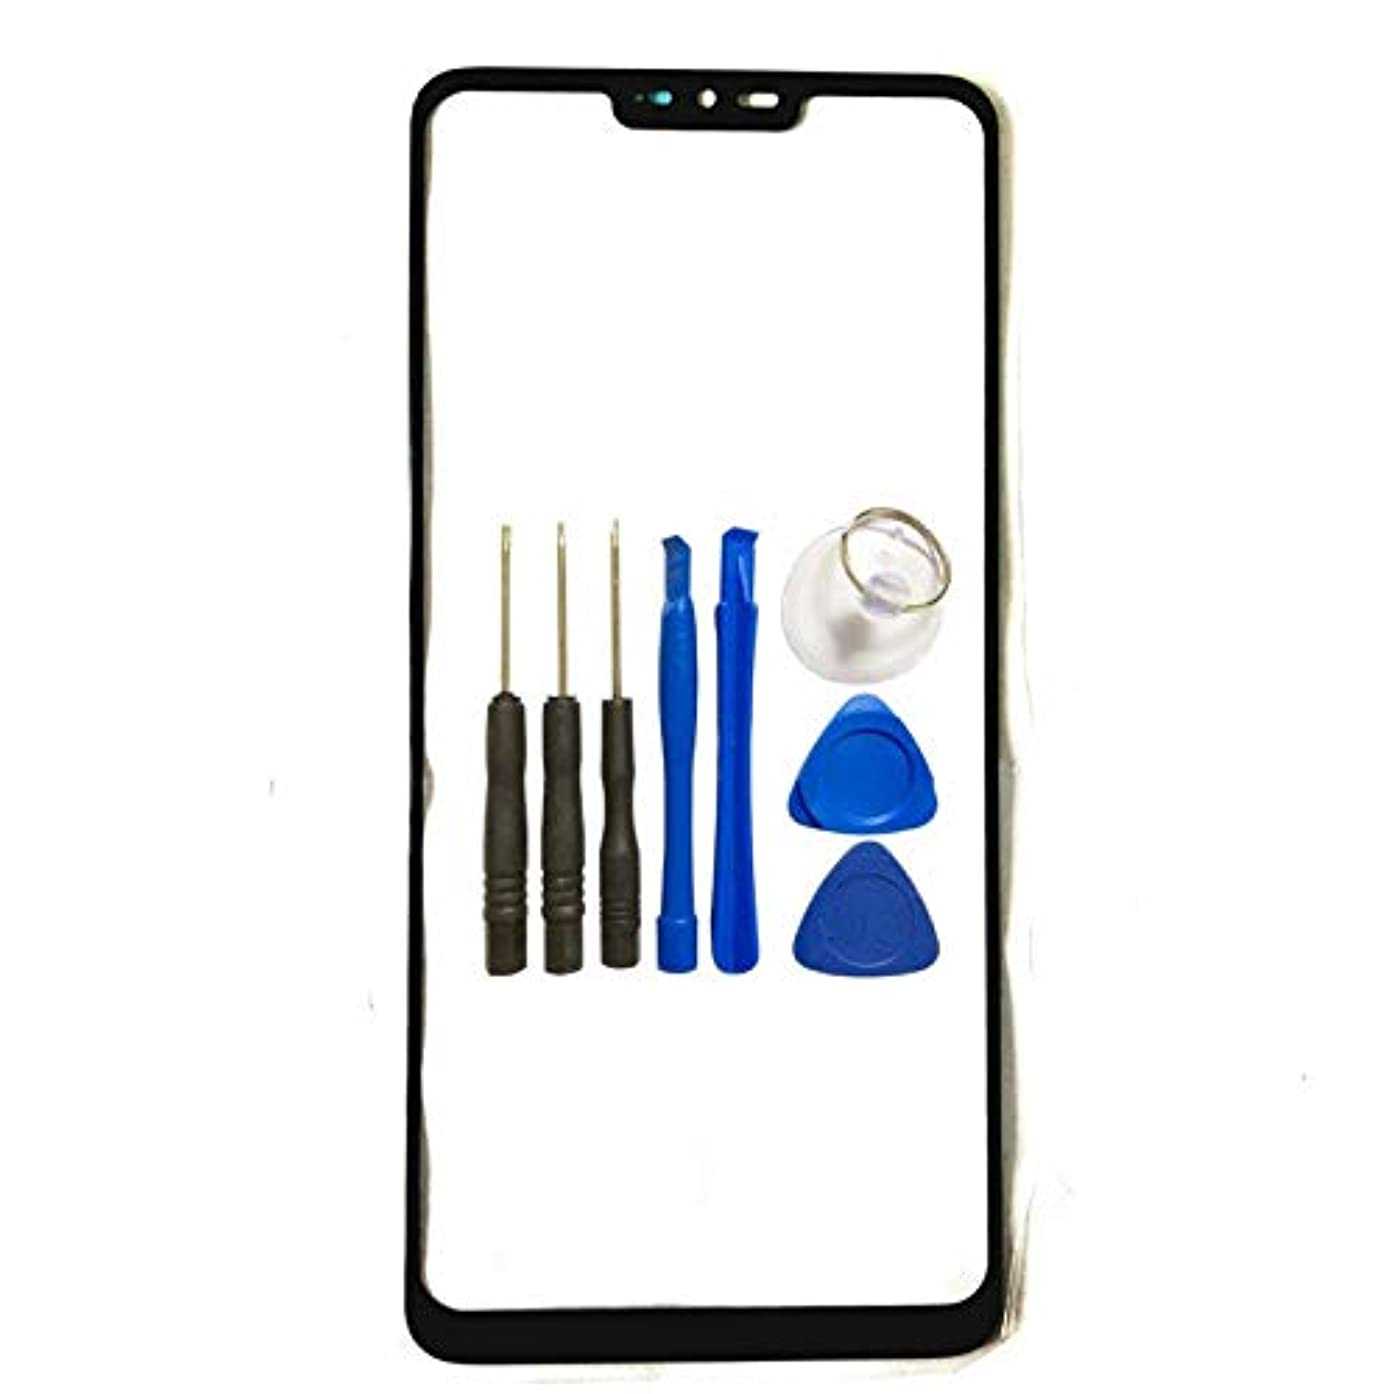 Screen Glass Panel Lens Replacement for LG G7 - Screen Glass Panel Lens Replacement for LG G7 G710ULM G710VMX G710PM LMG710TM LMG710VM with Opening Tools (Not LCD&Not Digitizer) …